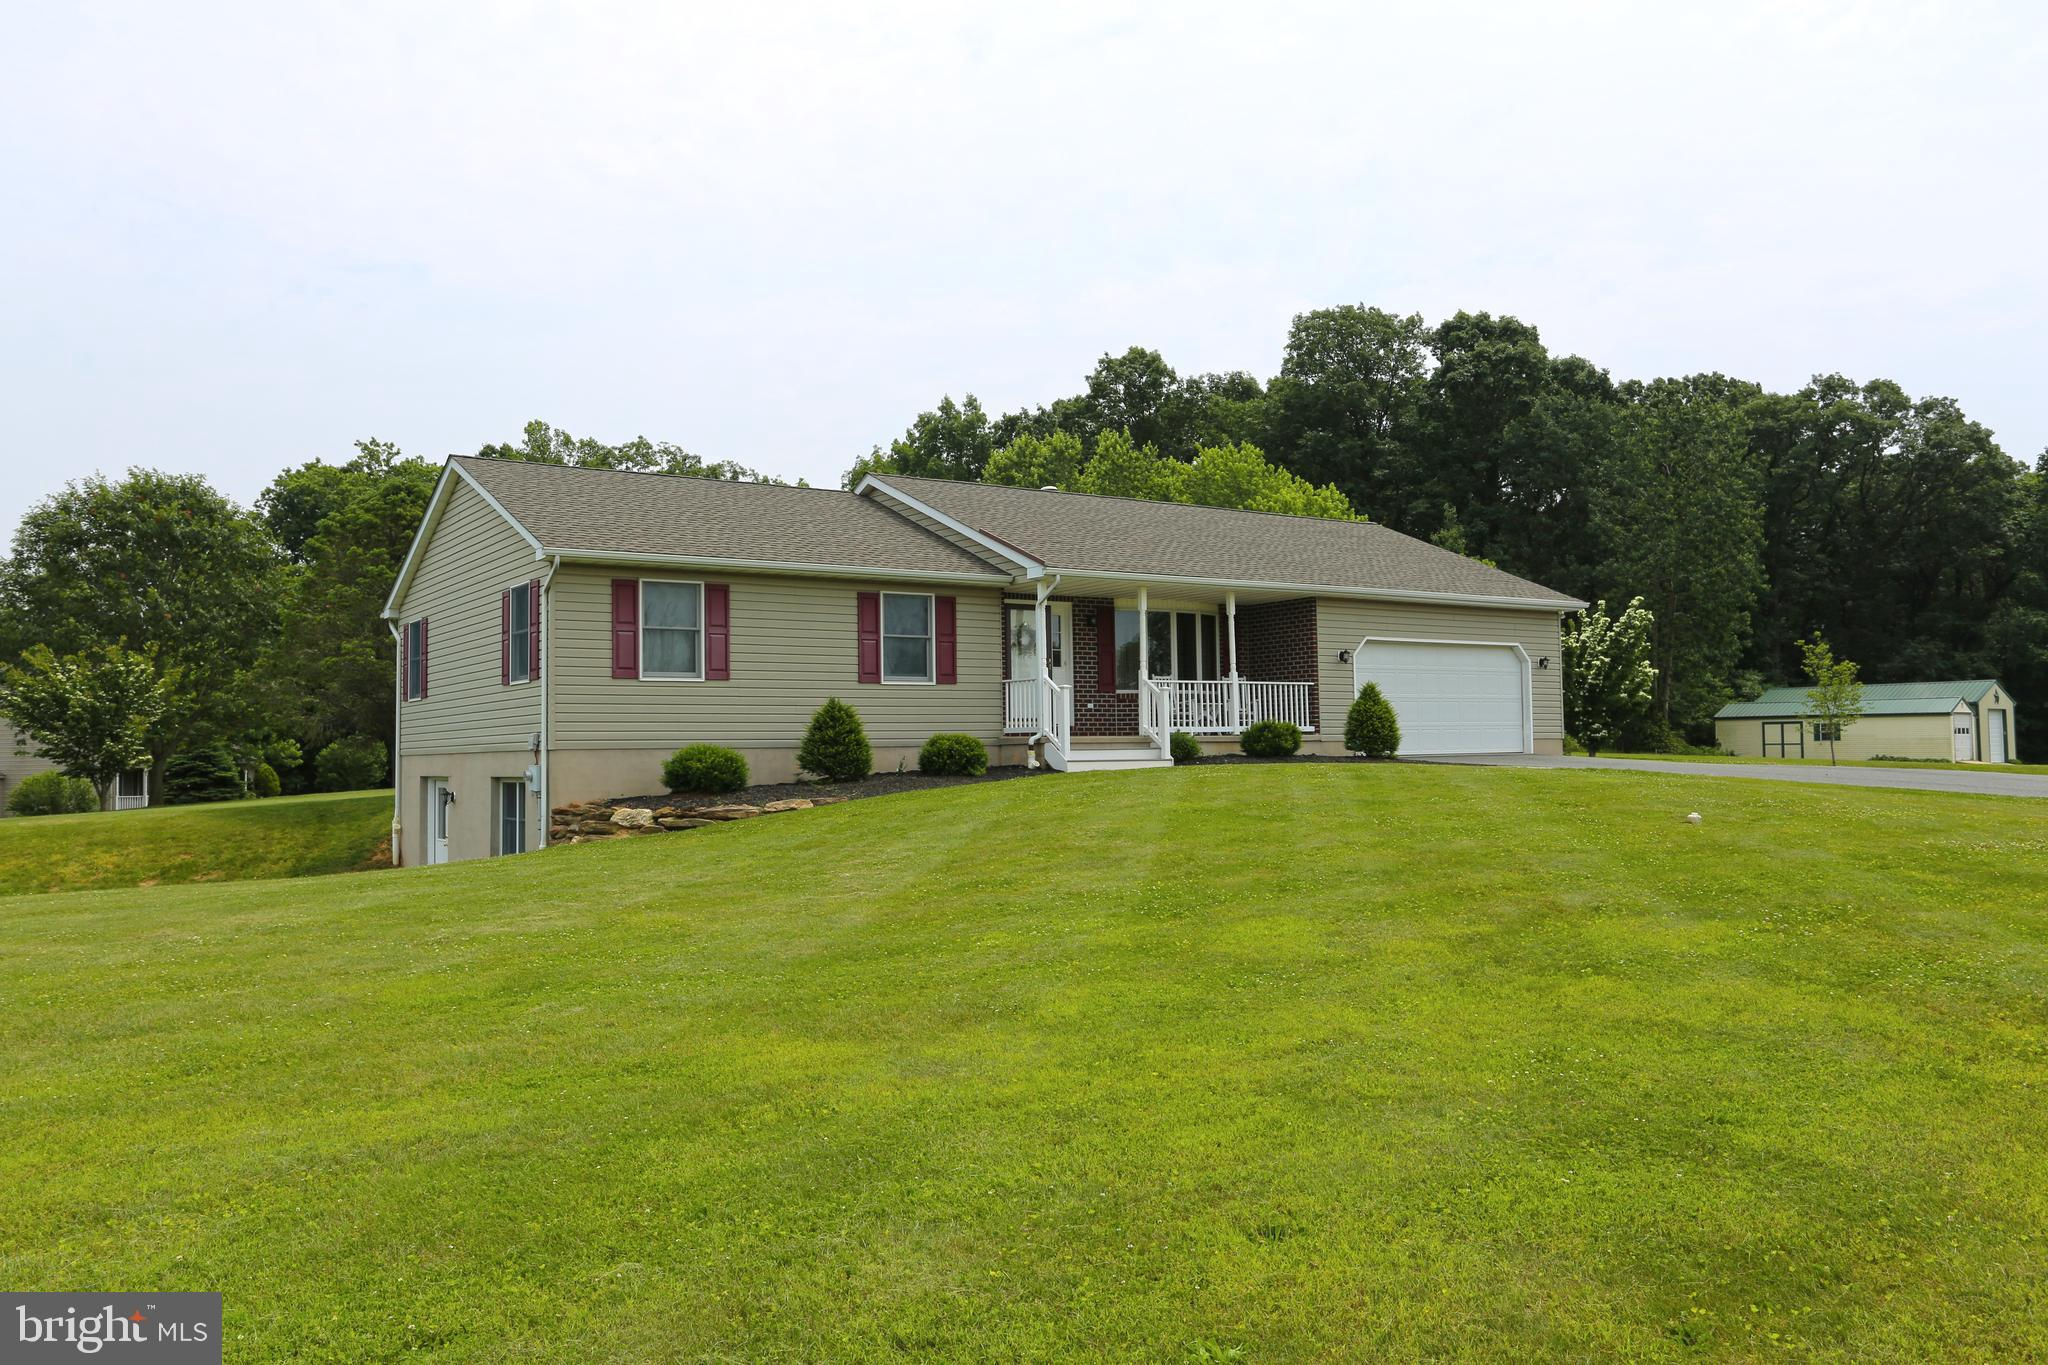 401 KUNKLE ROAD, FAWN GROVE, PA 17321